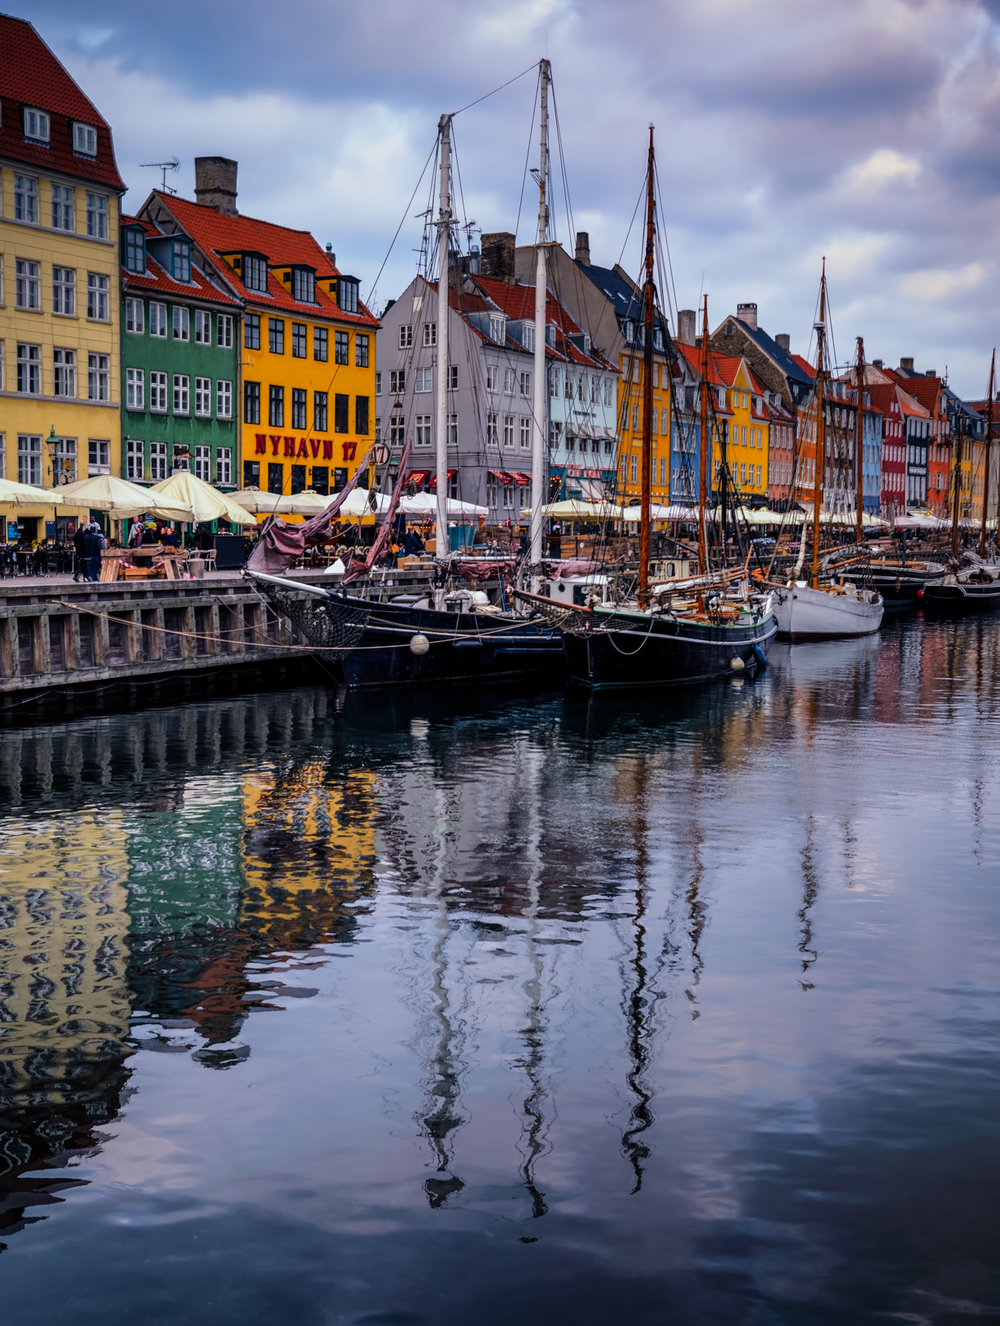 nyhavn, which i photograph a lot!!